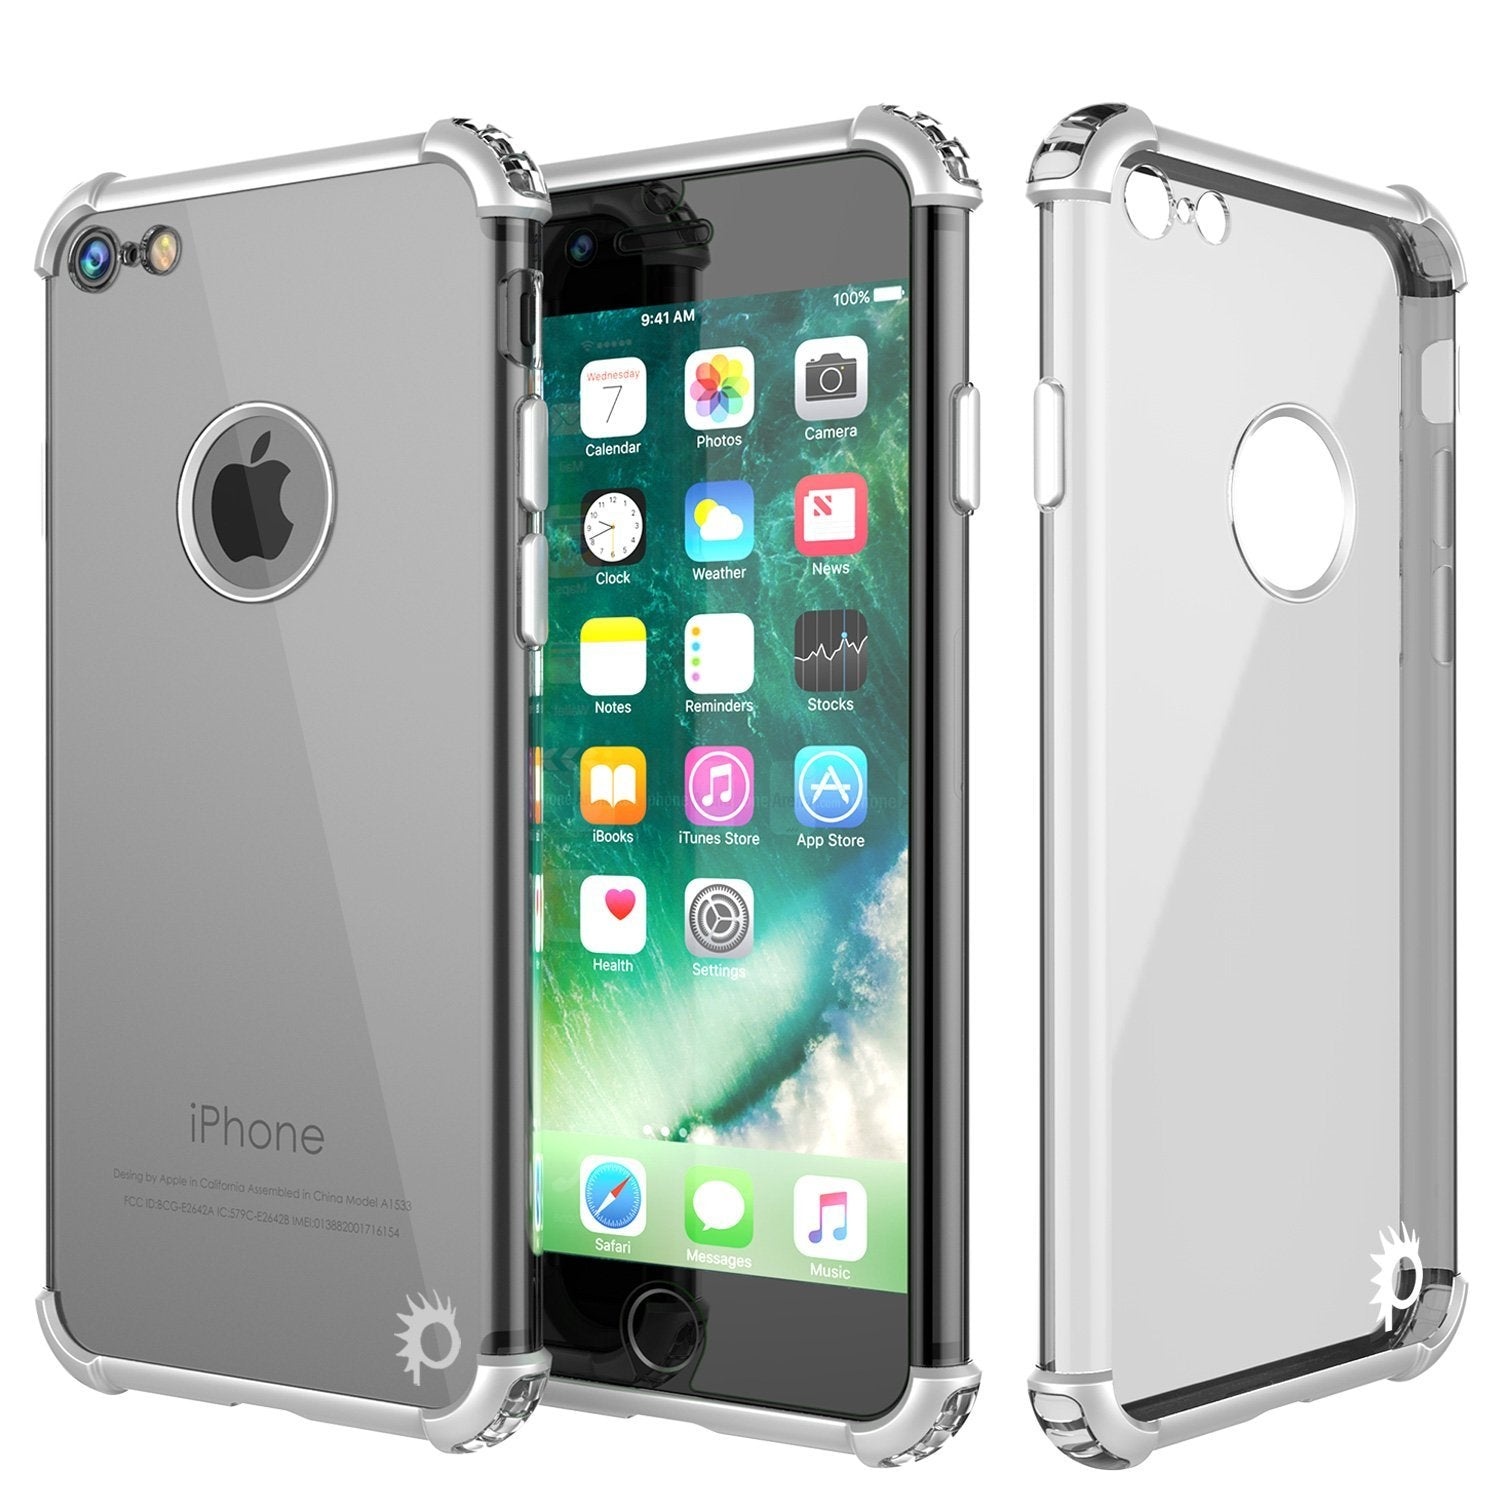 "iPhone SE (4.7"") Case, Punkcase [BLAZE SERIES] Protective Cover W/ PunkShield Screen Protector [Shockproof] [Slim Fit] for Apple iPhone [Silver]"